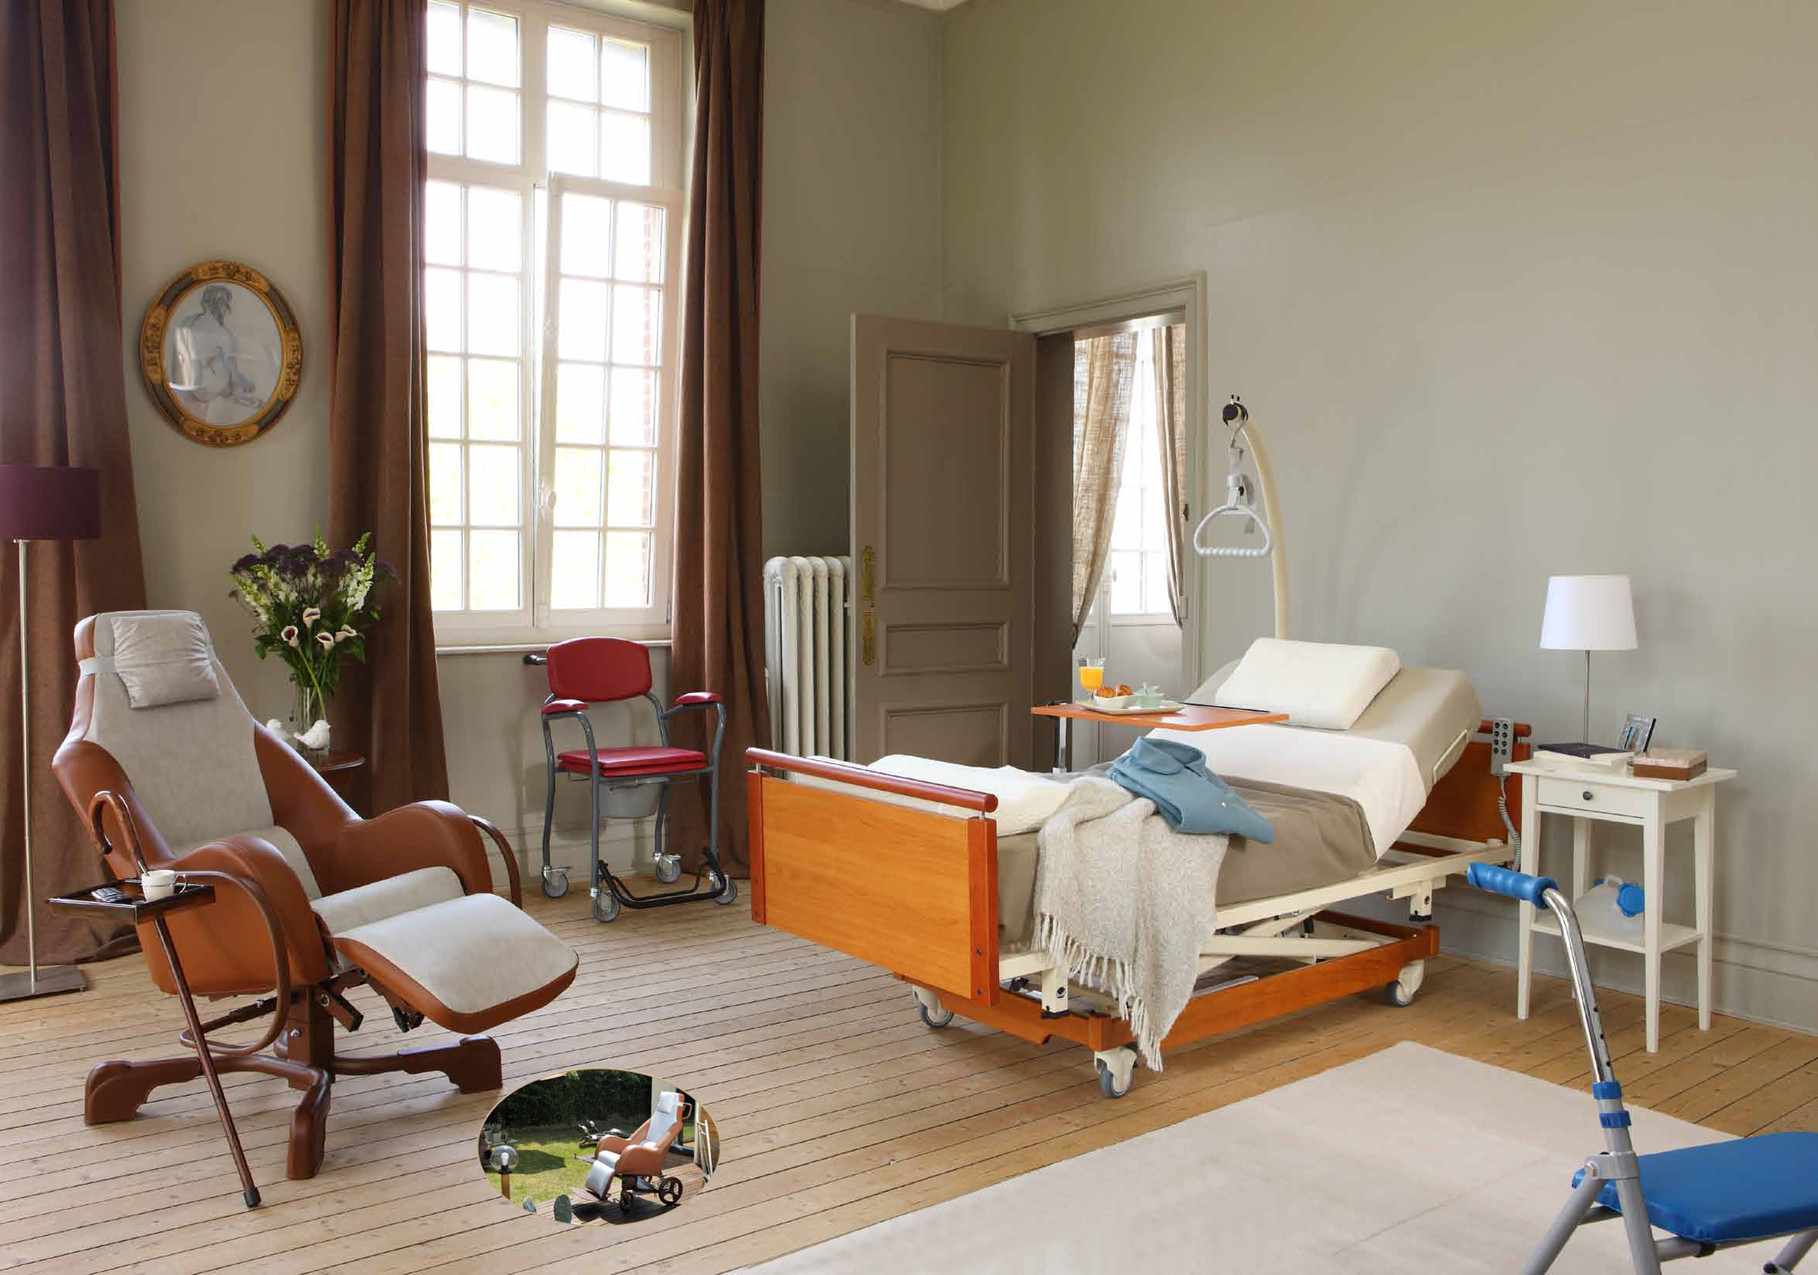 vente et location de materiel medical site de. Black Bedroom Furniture Sets. Home Design Ideas